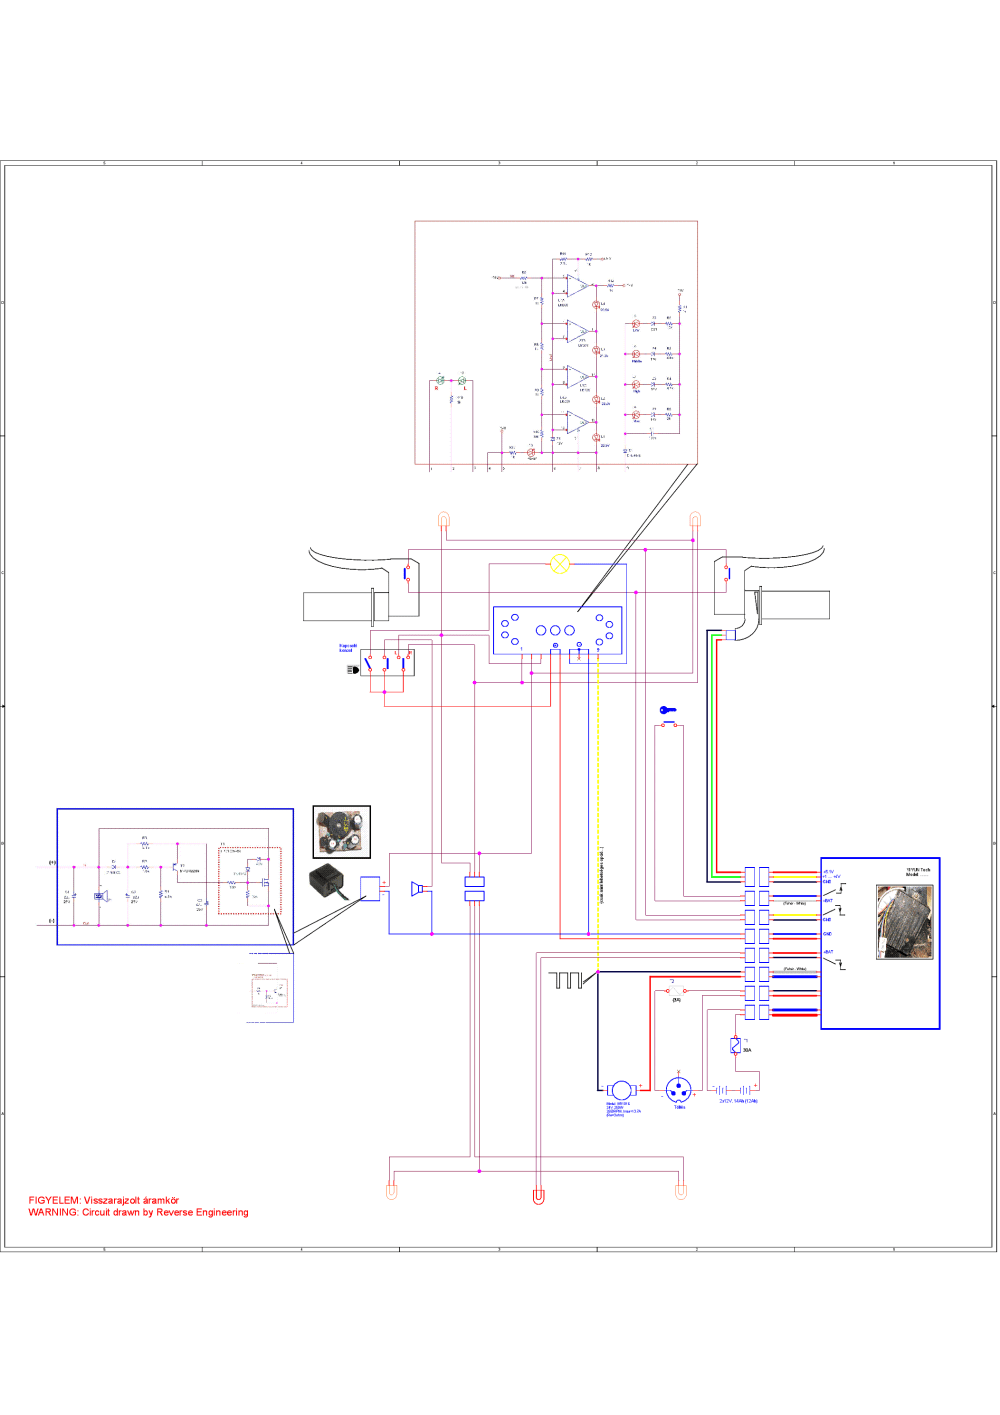 medium resolution of trotico china e scooter wiring diagram repair info service manual bmw c1 scooter wiring schematic scooter wiring schematics